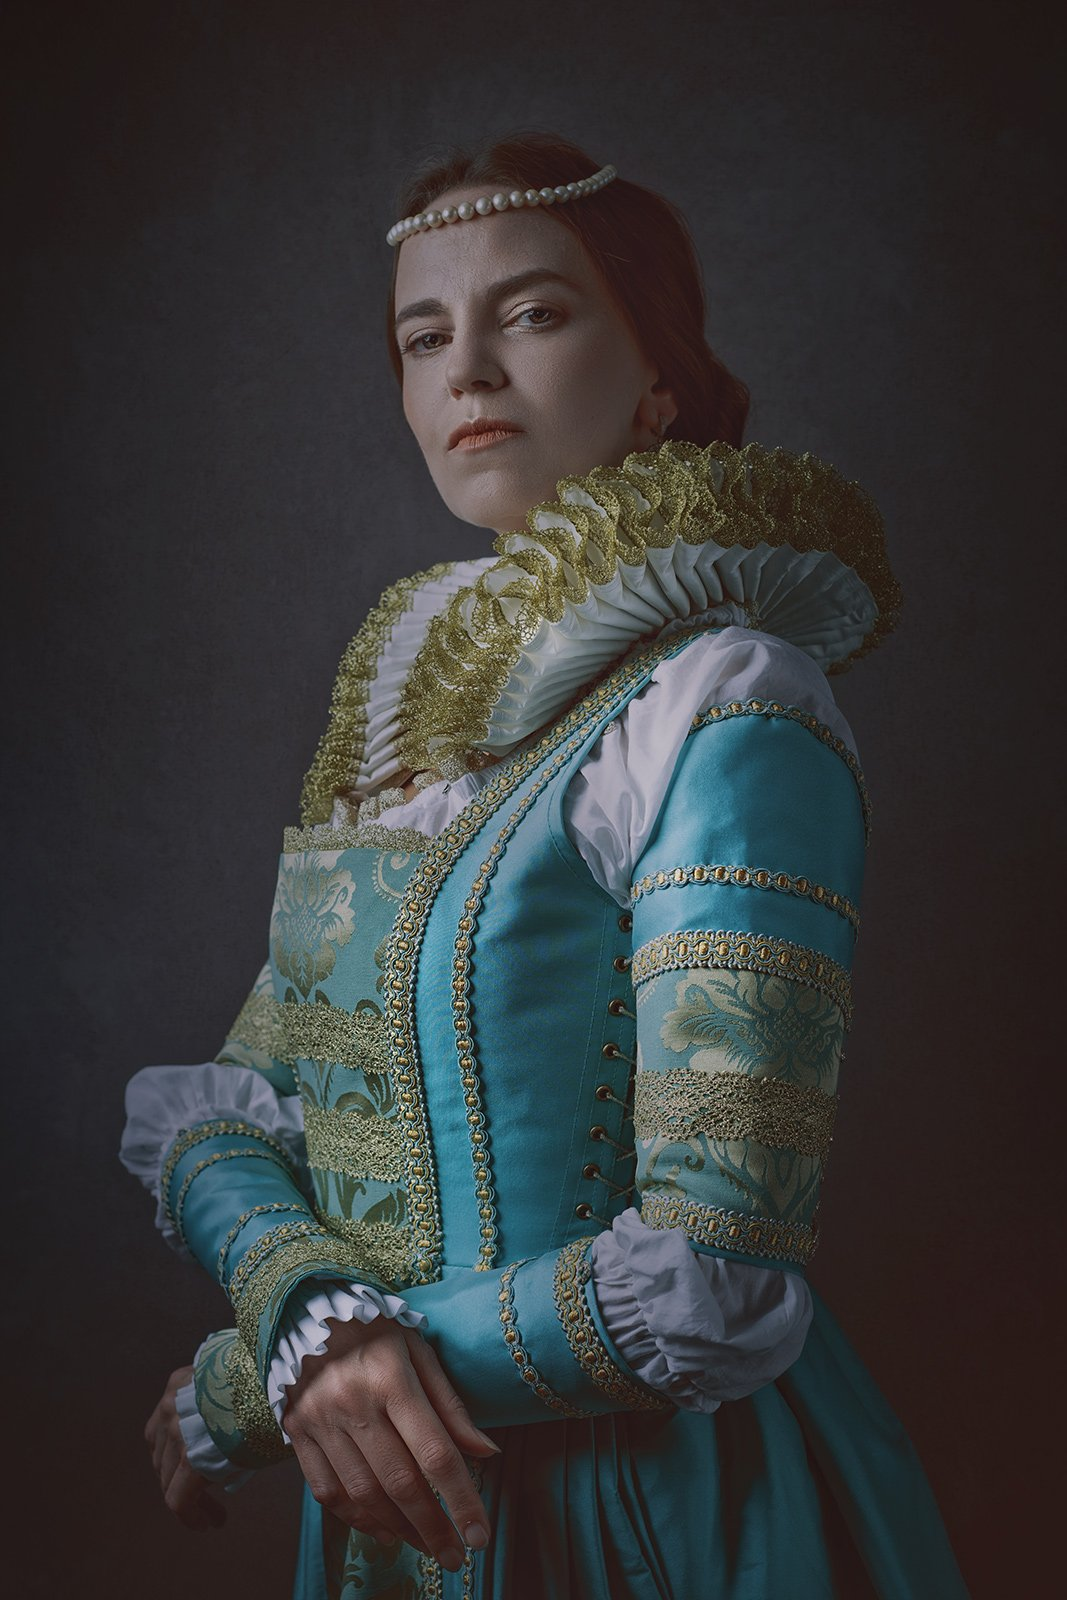 female, portrait, dark beauty, beauty, dark, retro, vintage, mood, queen, lady, noble, honor, heritage, femine, woman, one, person, people, medieval, Дмитрий Толоконов